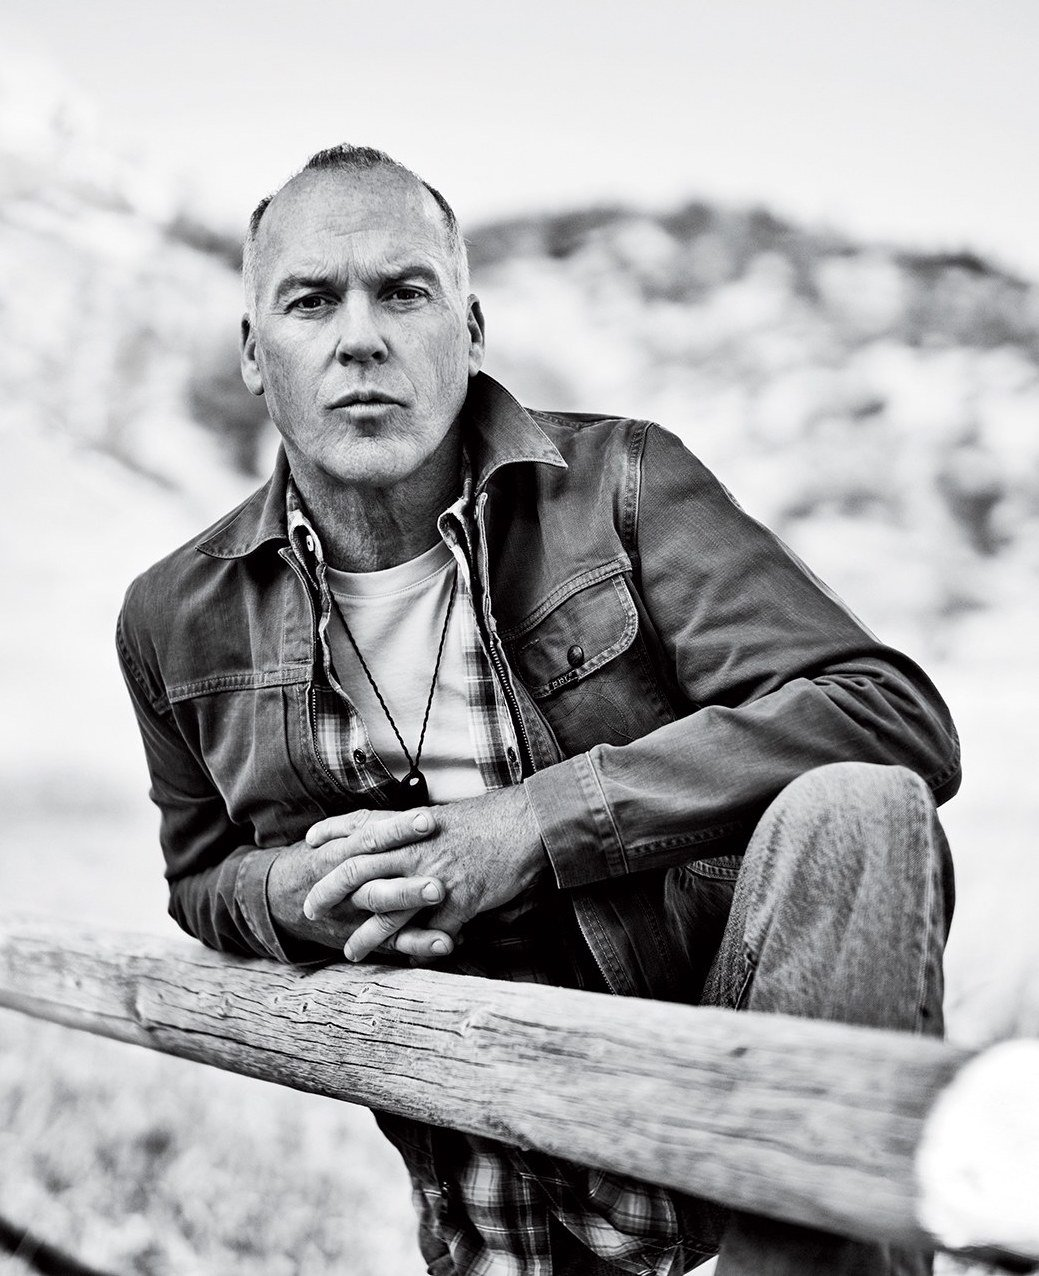 9 3 1 20 Facts You Probably Didn't Know About Michael Keaton